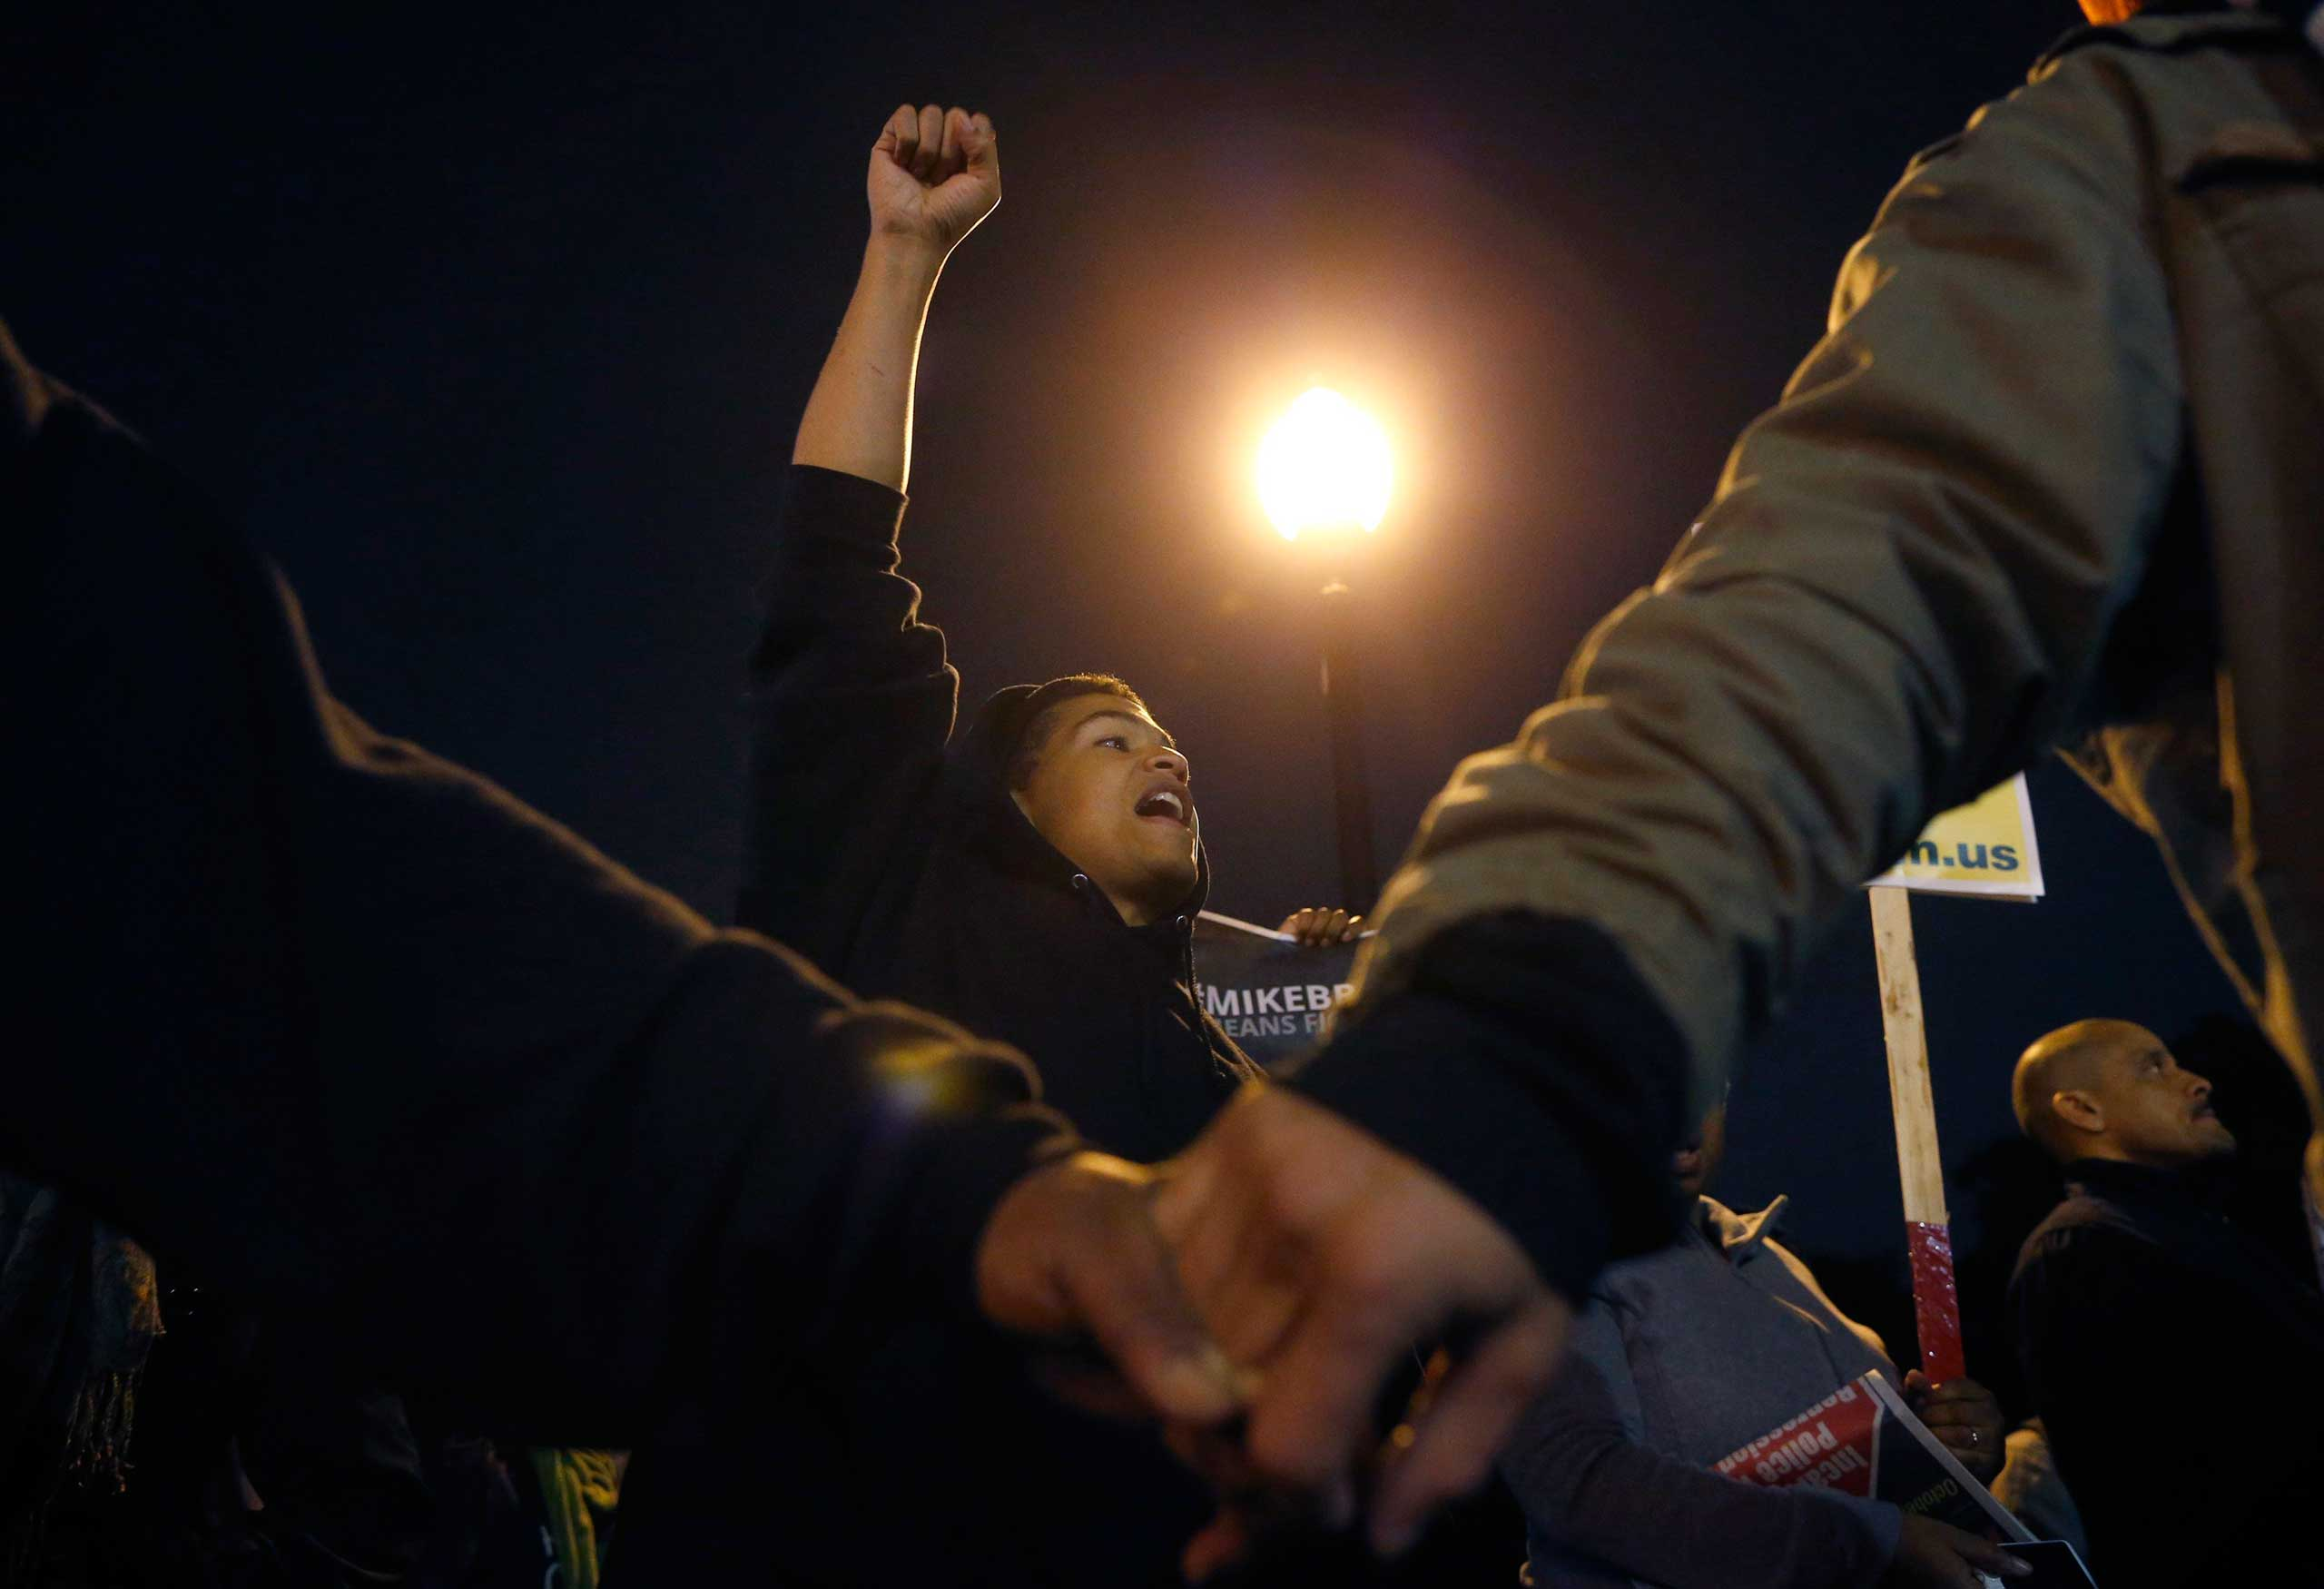 Protesters hold hands and demonstrate across the street from the Ferguson Police Department in Ferguson, Mo. on Oct. 10, 2014.